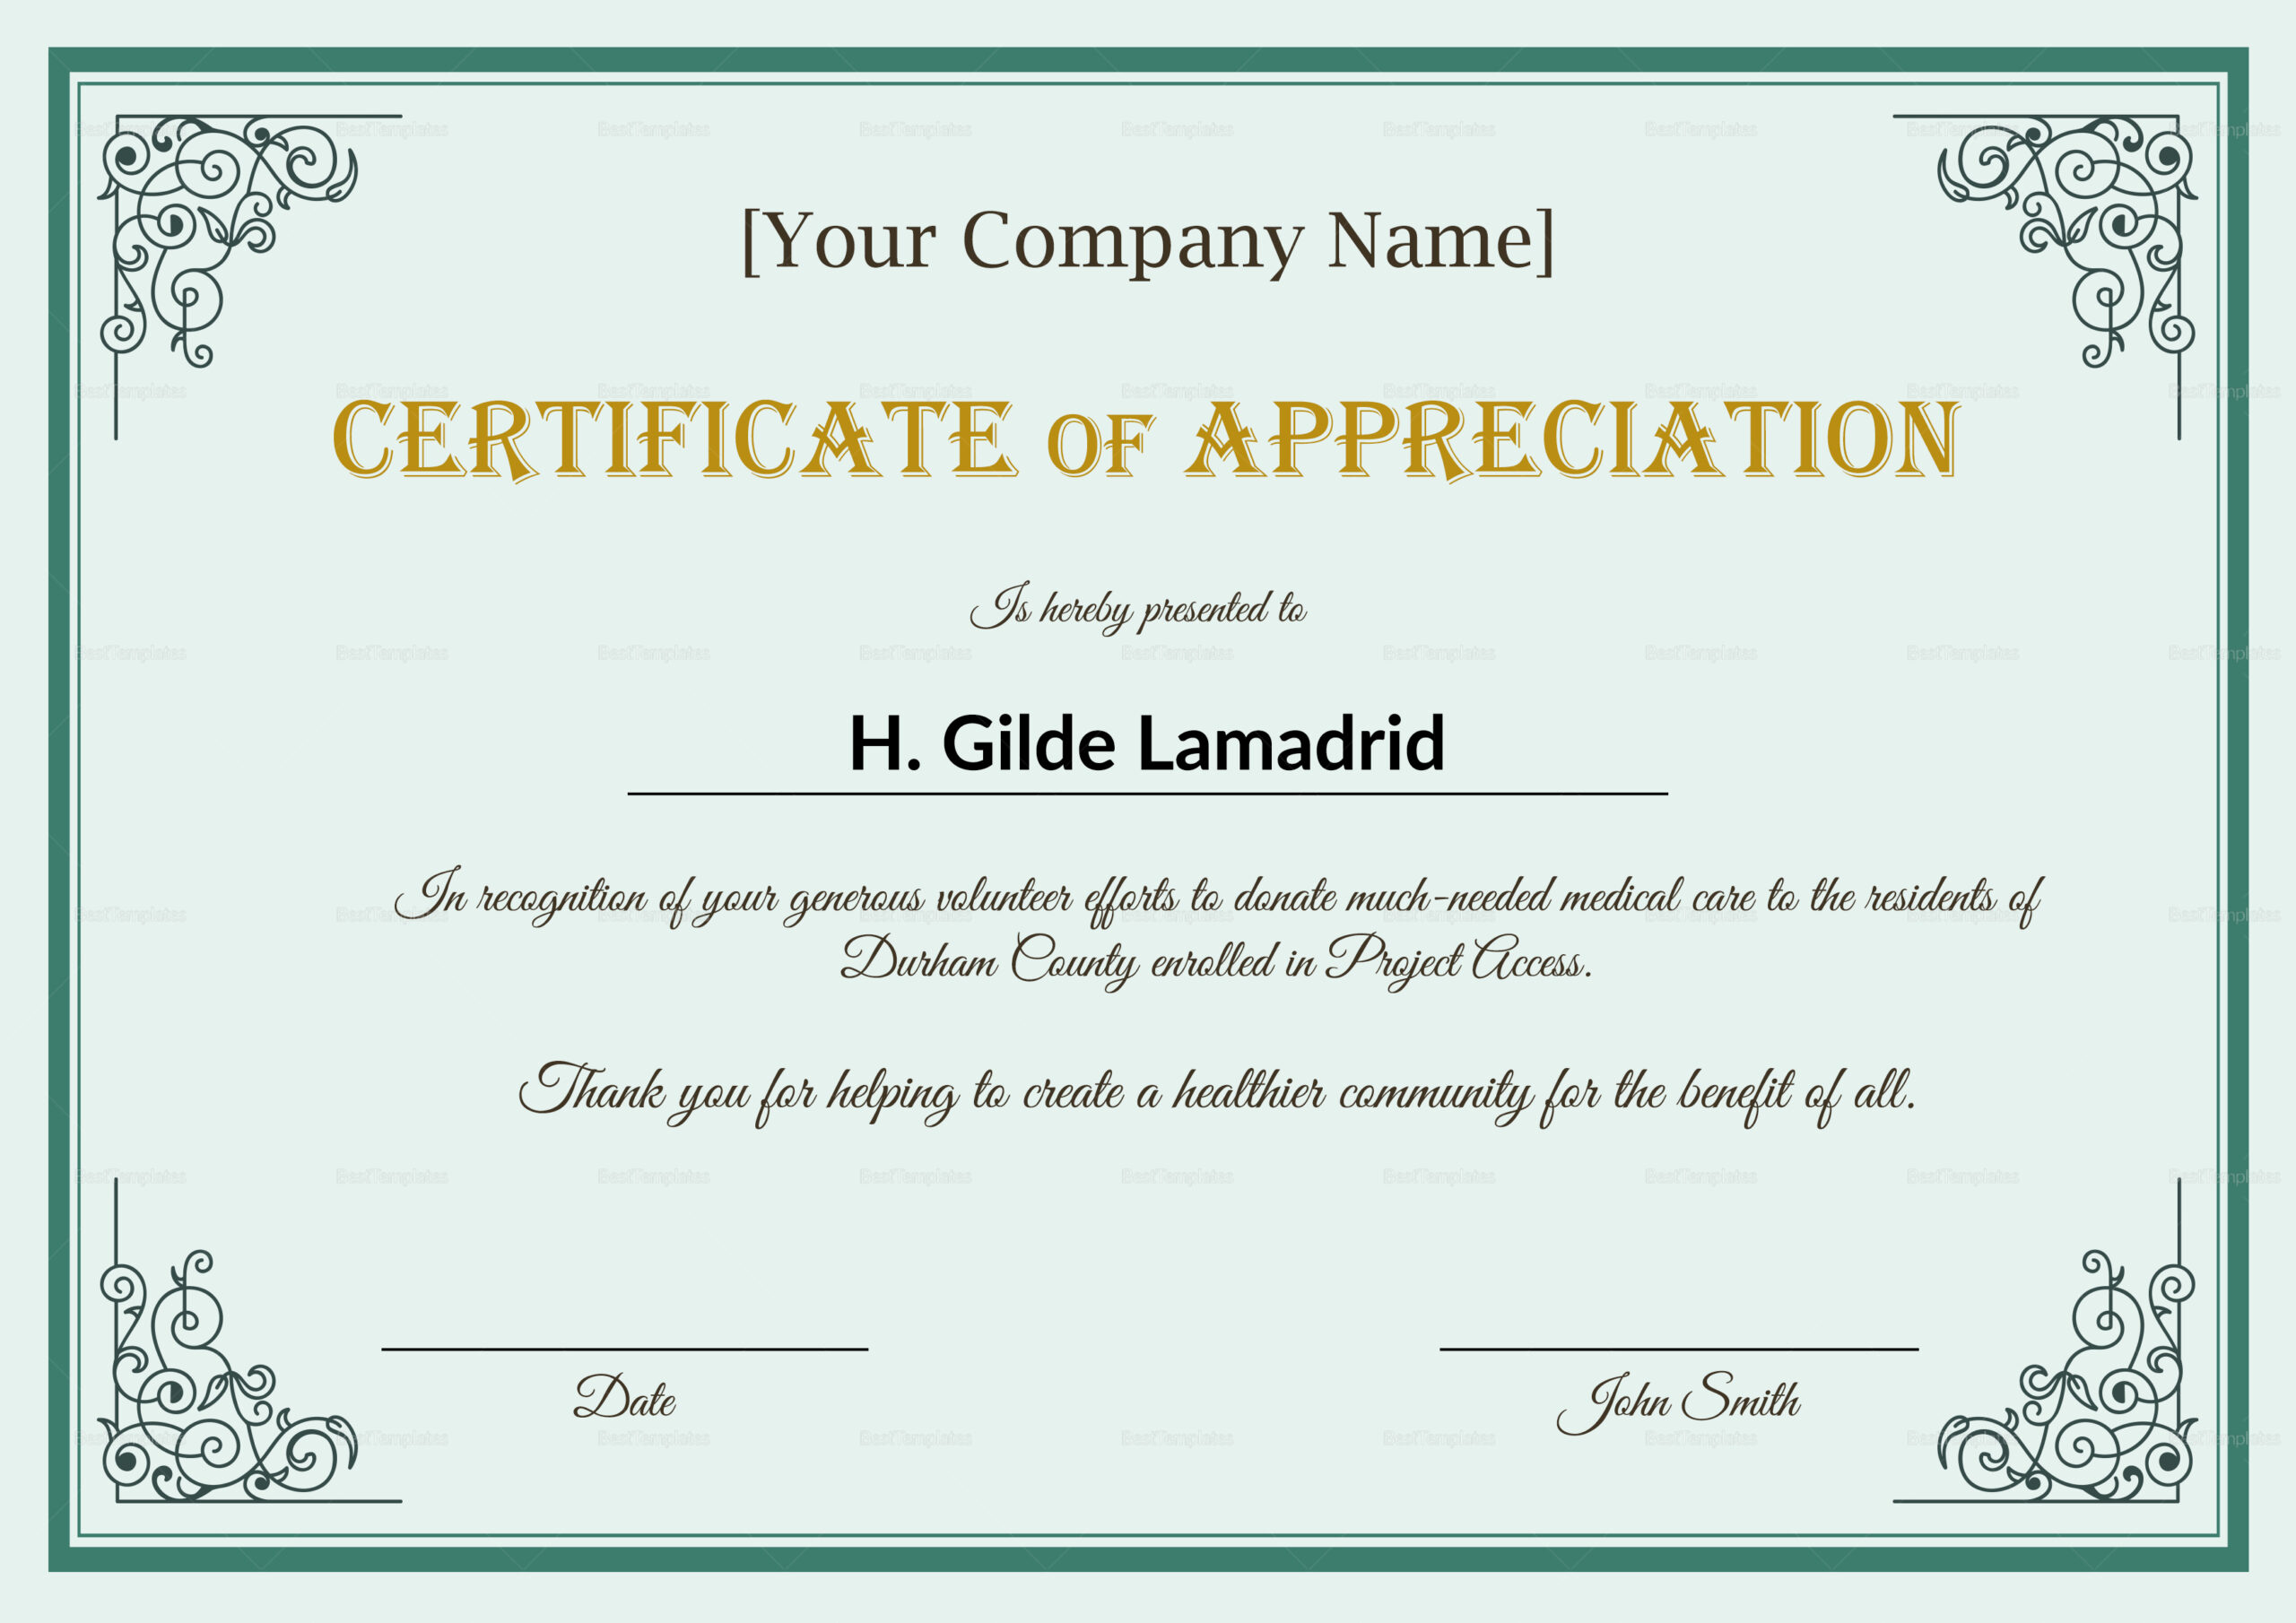 Employee Recognition Certificates Templates  Calep With with regard to Volunteer Of The Year Certificate Template